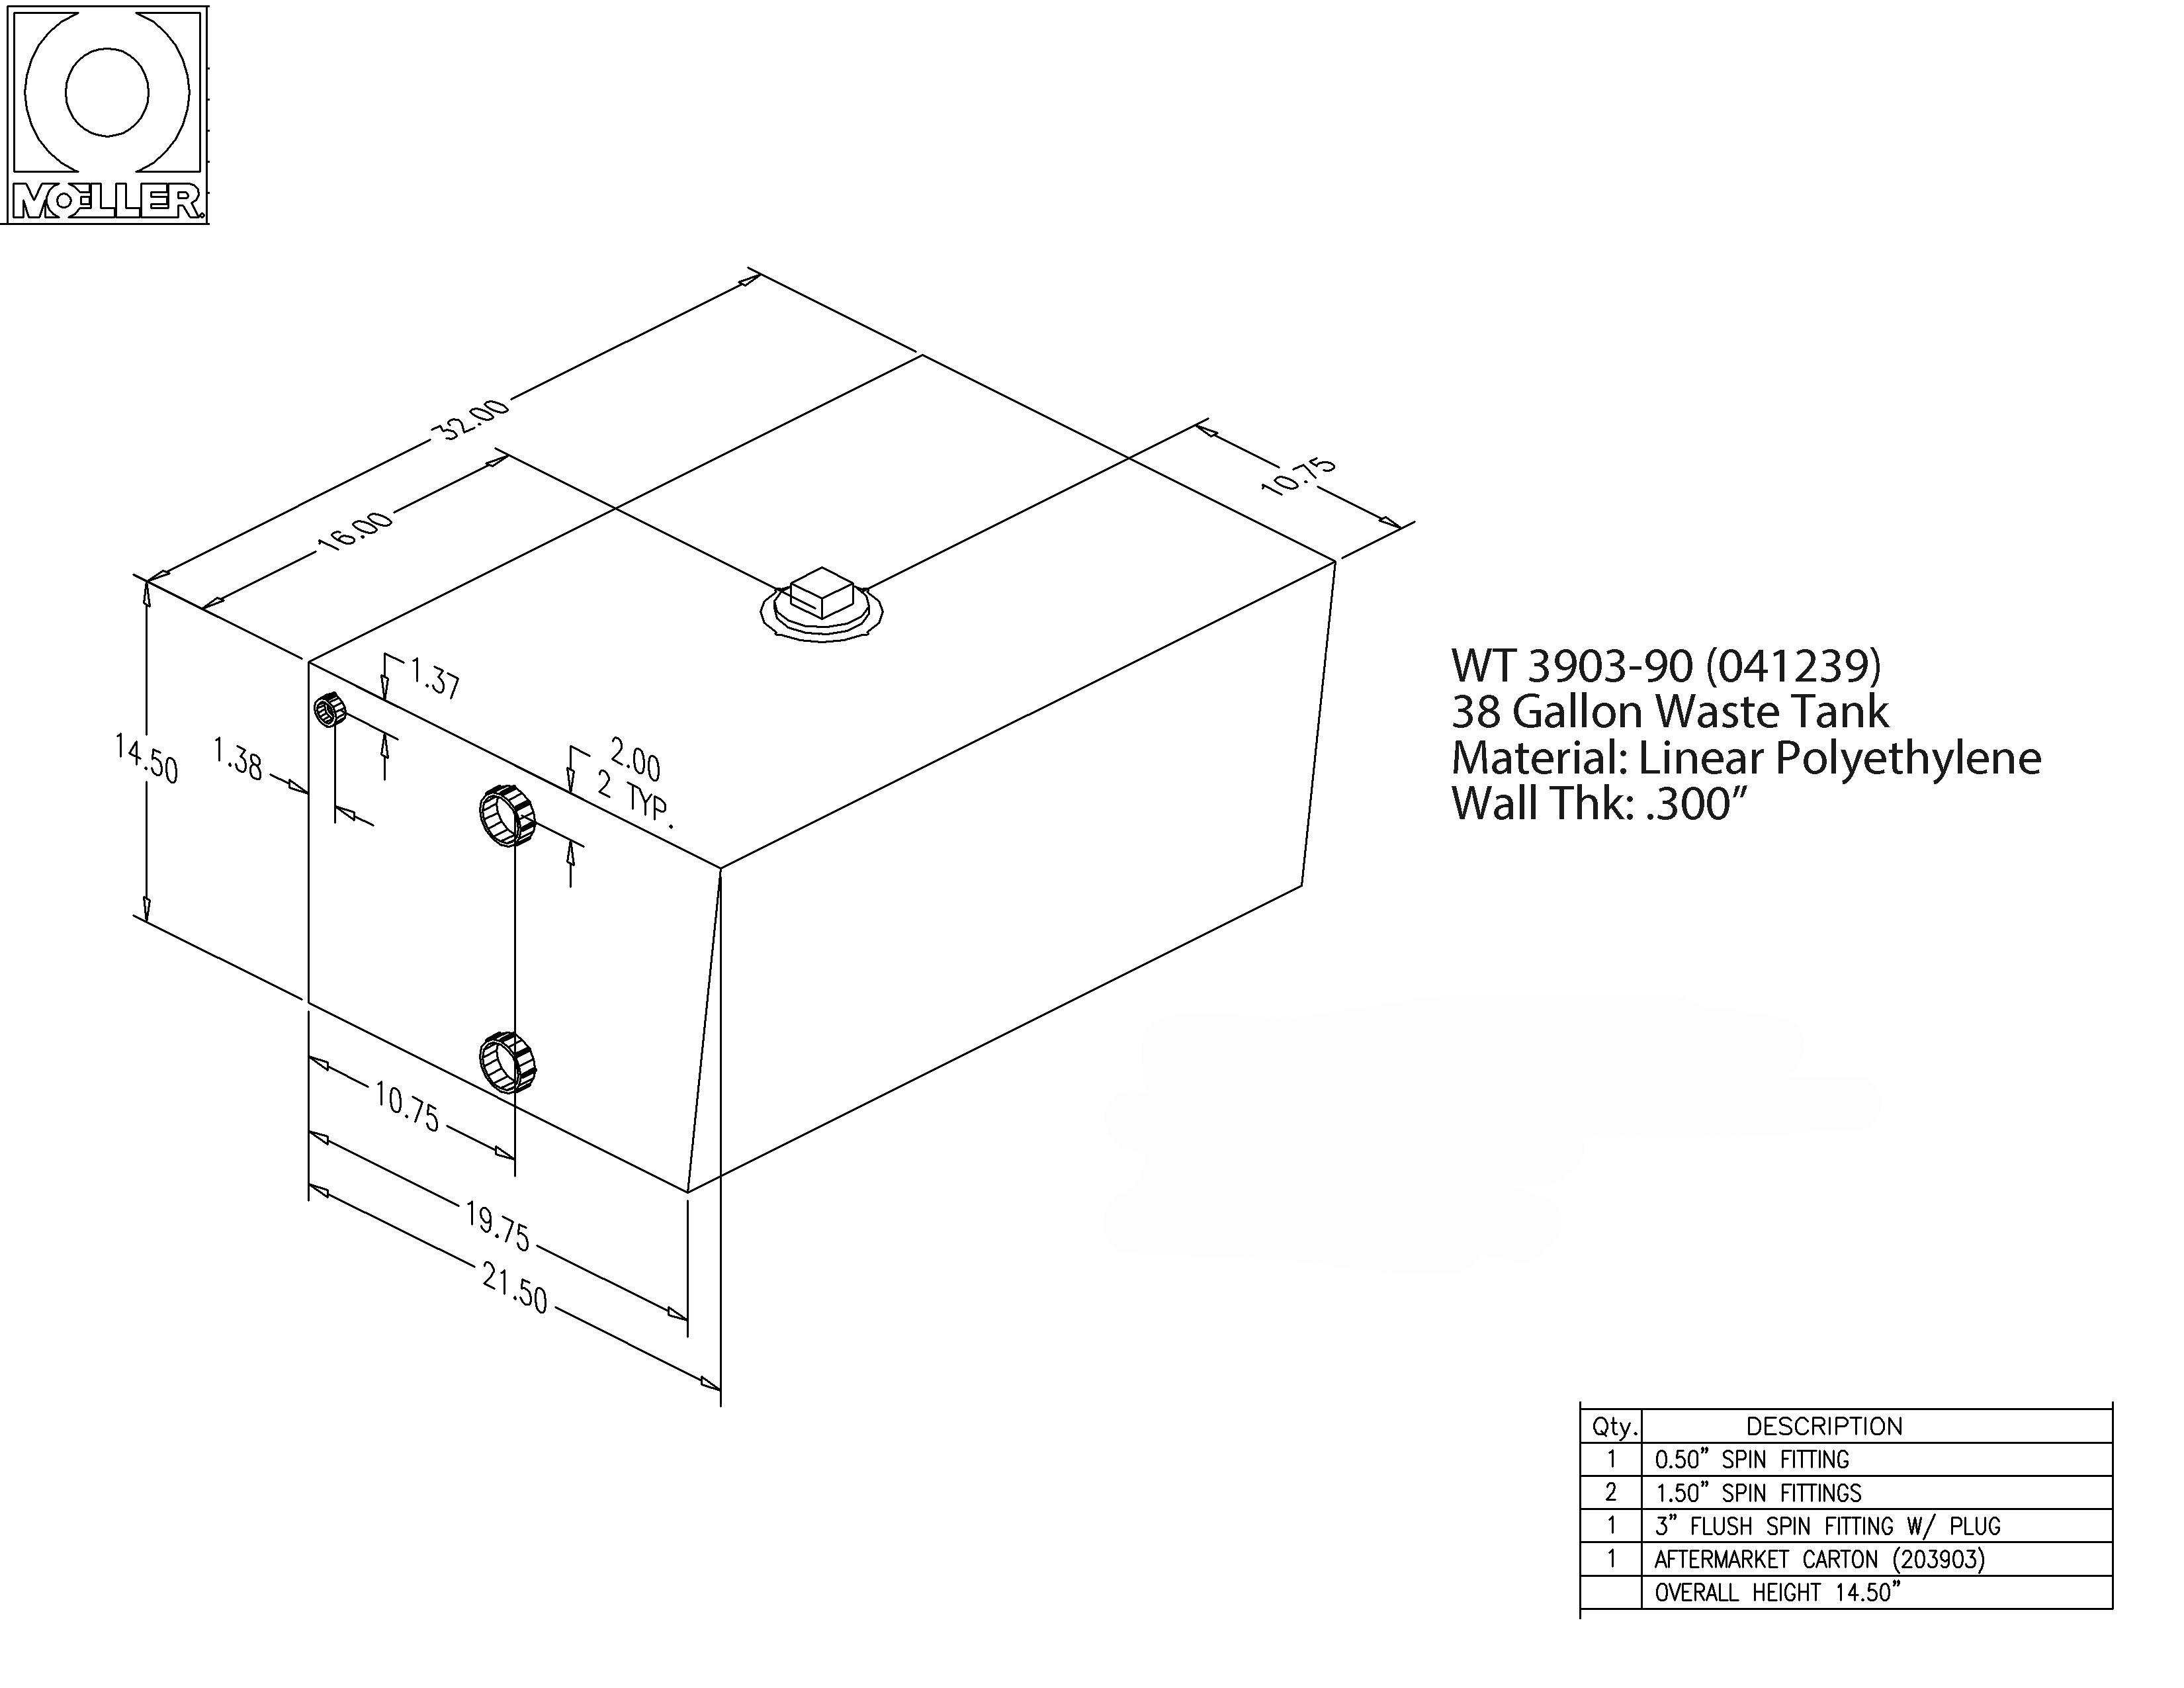 39 Gallon Rectangular Shaped Waste/Water Tank, 32″x21.5″x14.5″, WT3903-90 (041239)